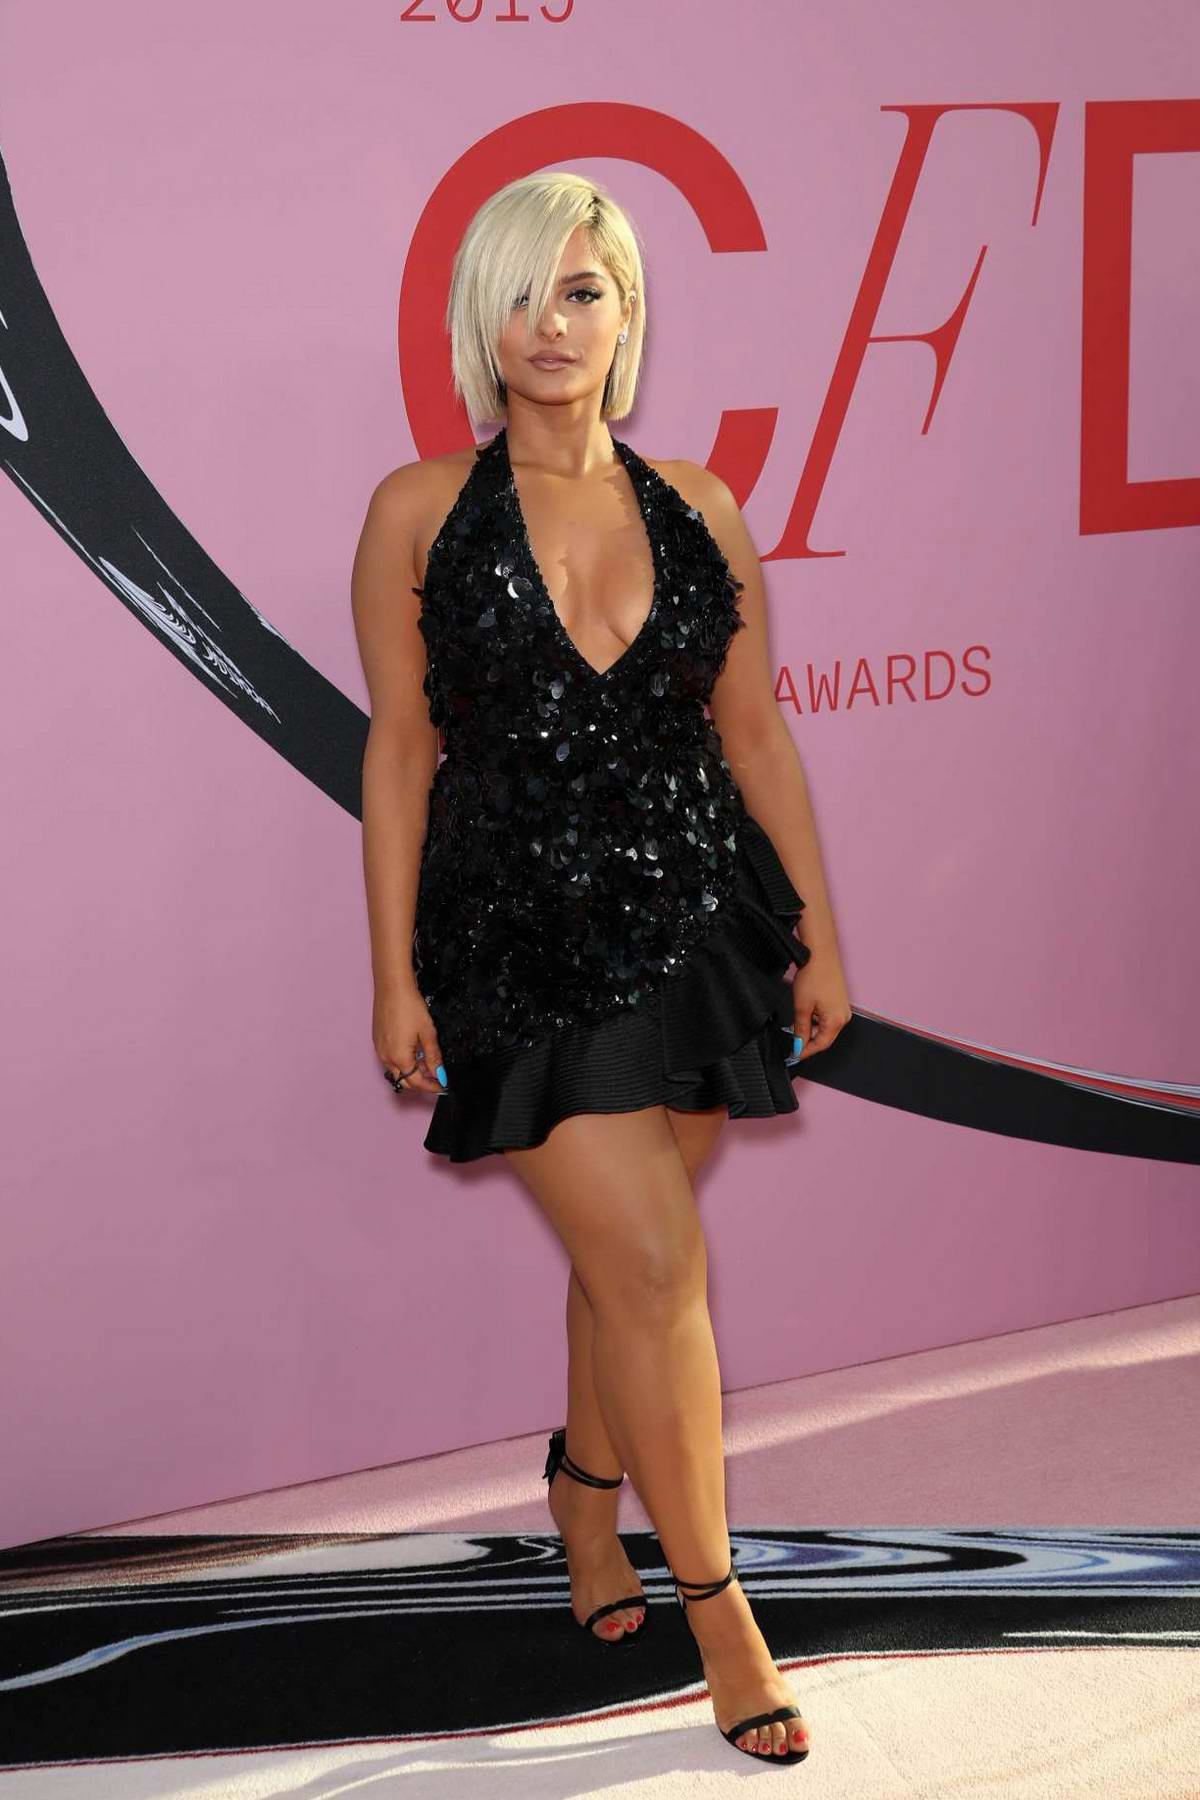 Bebe Rexha attends the 2019 CFDA Fashion Awards at Brooklyn Museum in New York City